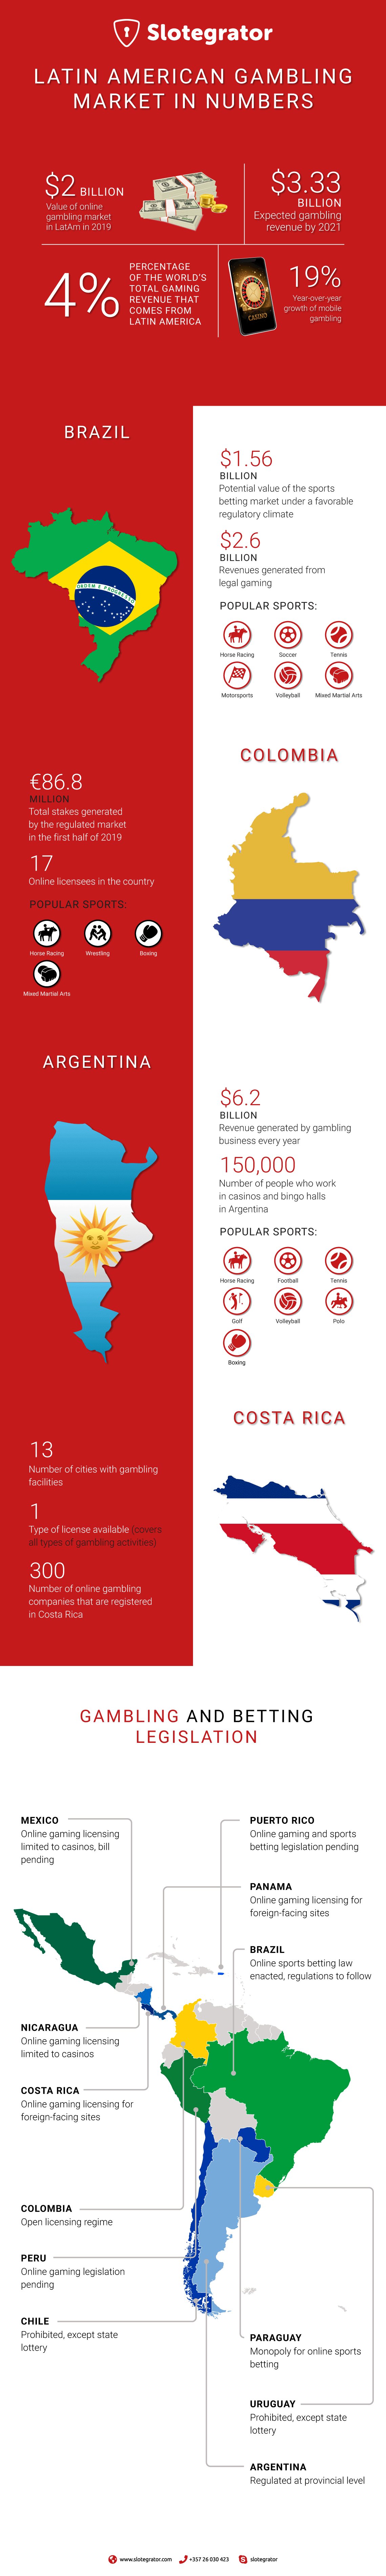 Latin American Gambling Market in Numbers